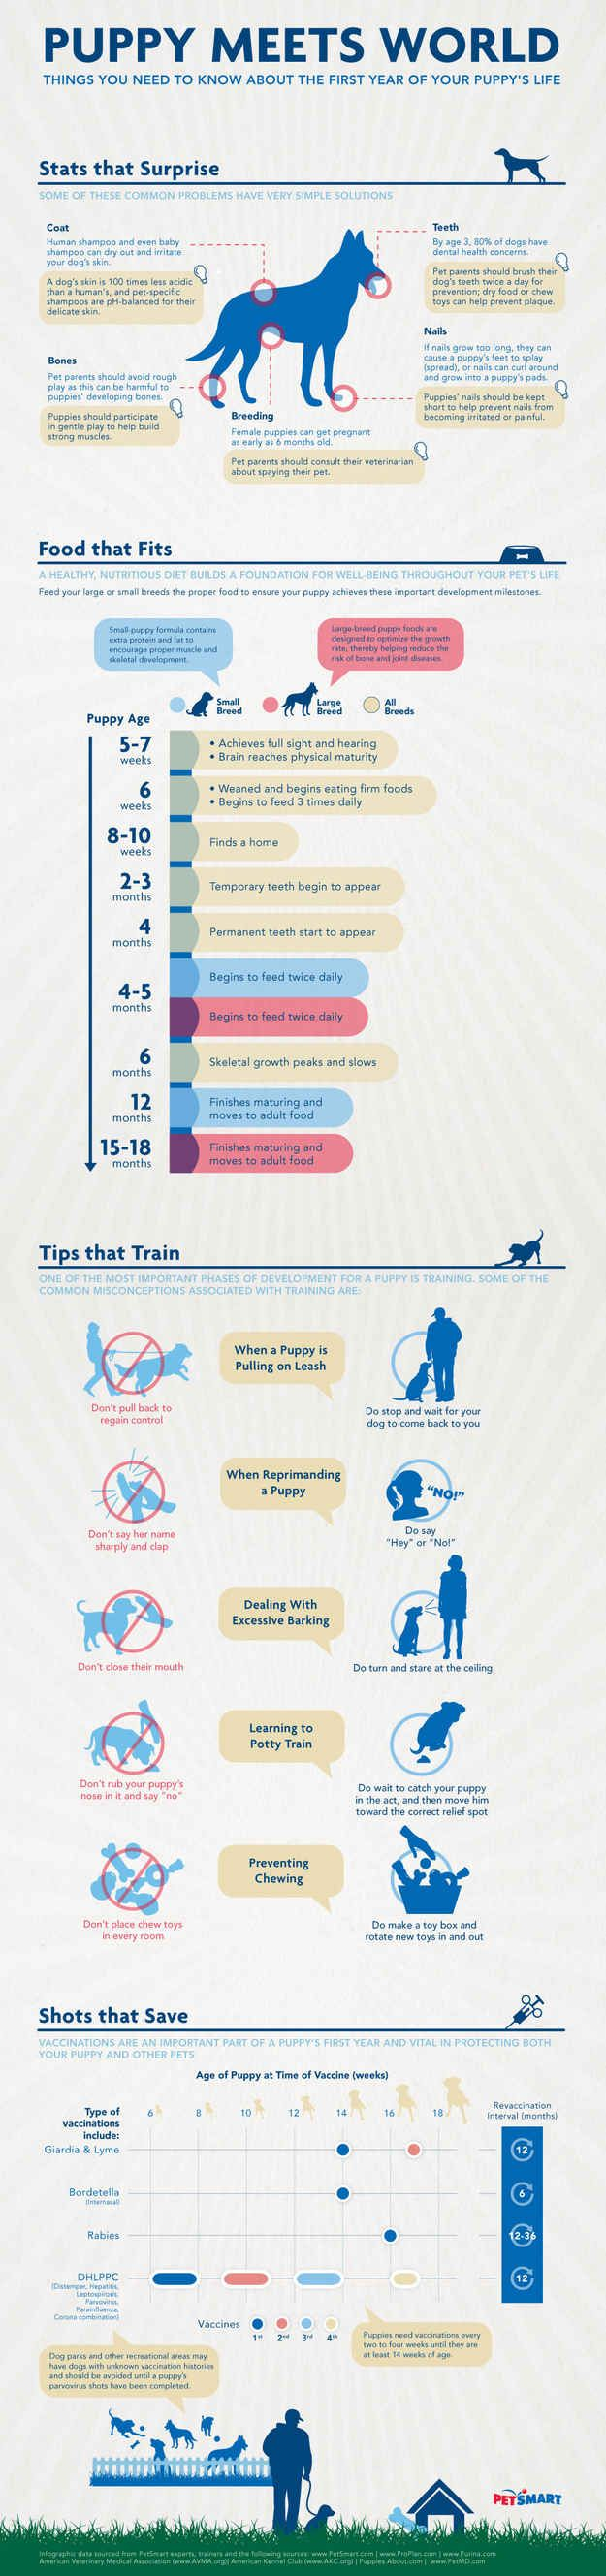 Puppy Meets World (INFOGRAPHIC)